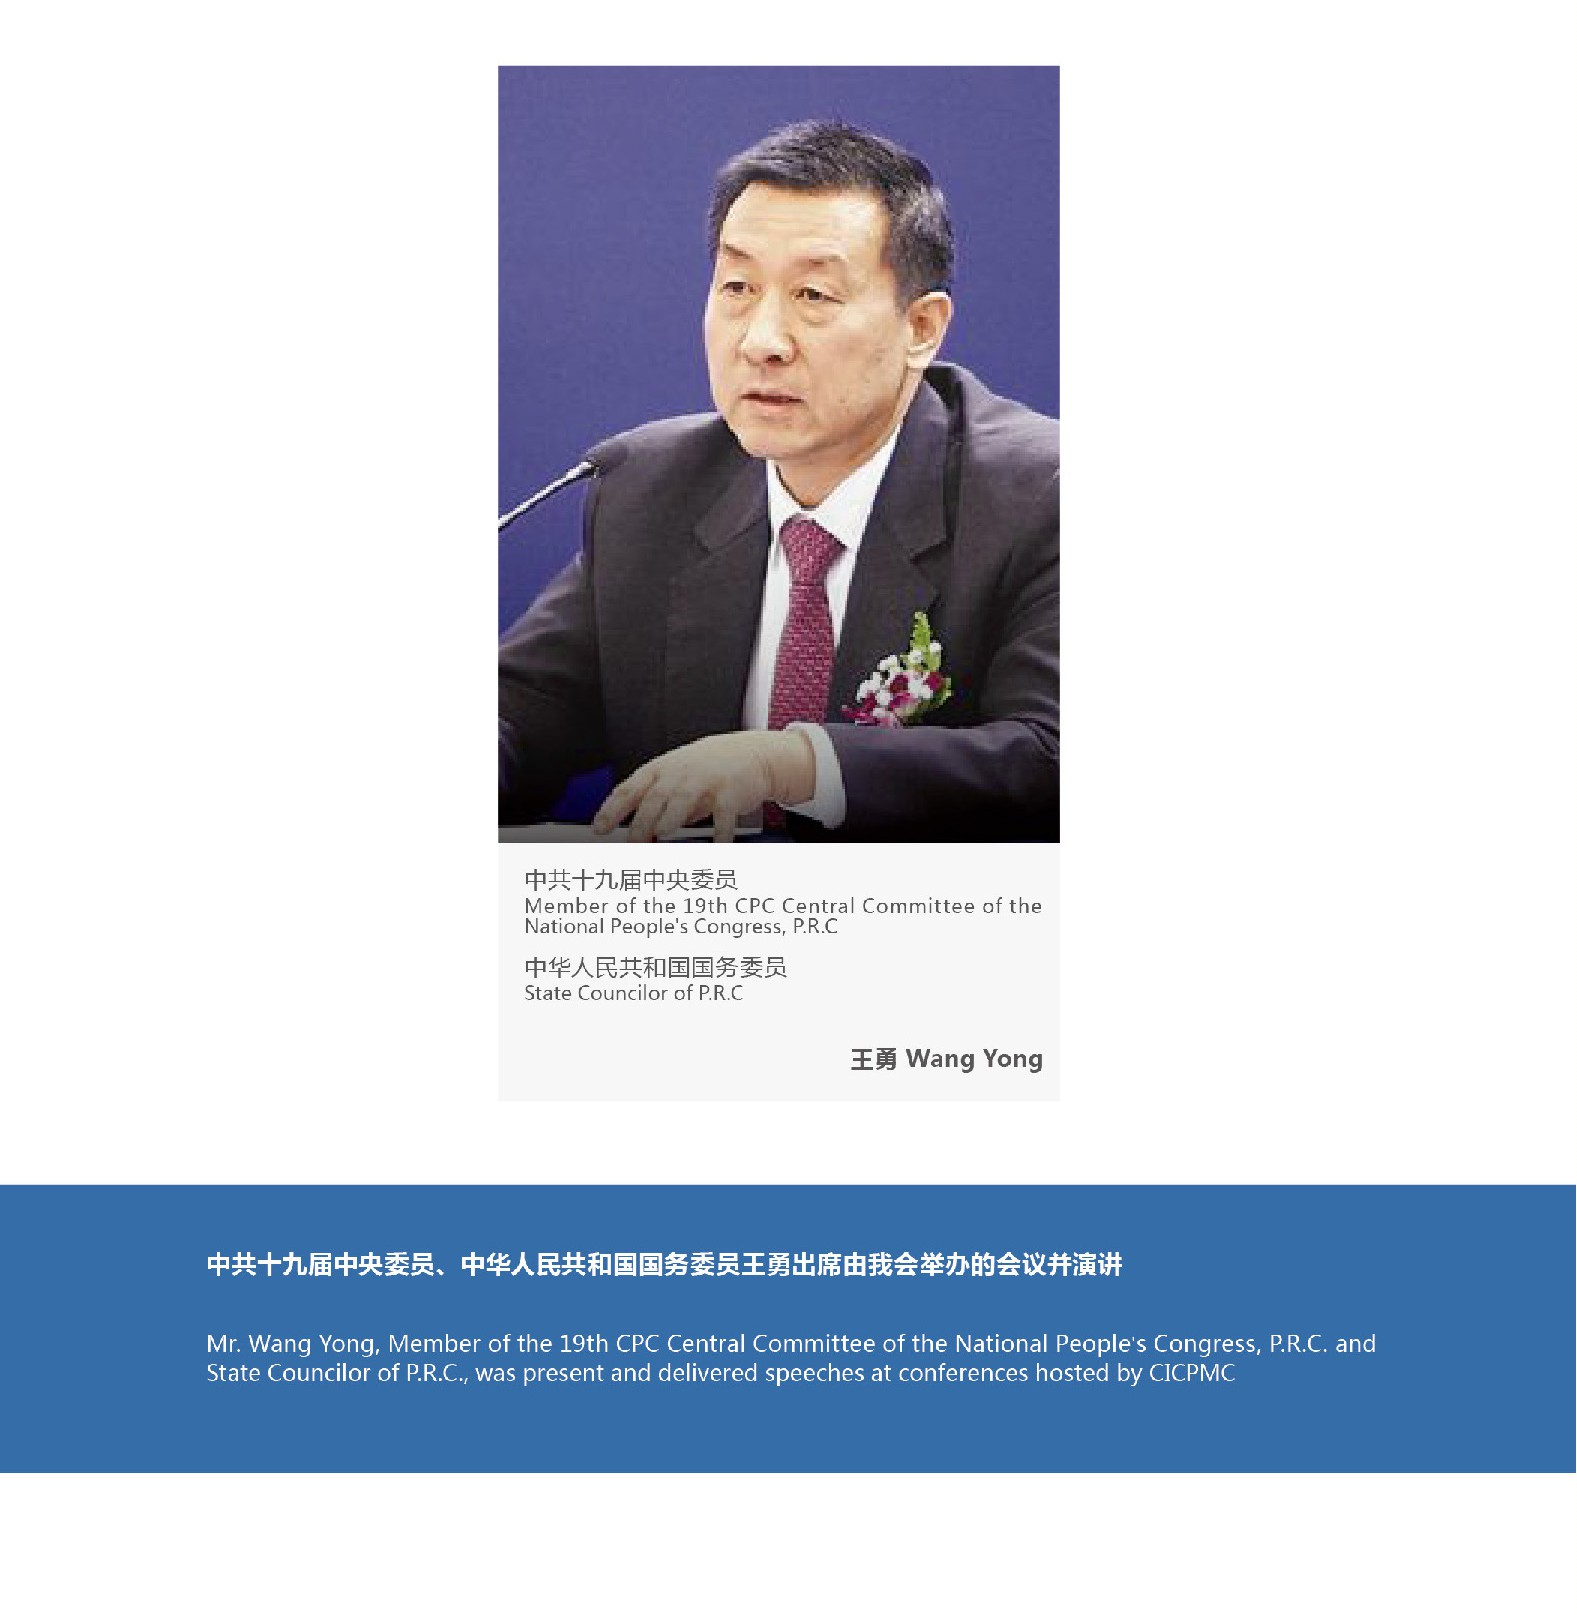 Mr. Wang Yong, Member of the 19th CPC Central Committee of the National People's Congress, P.R.C. and State Councilor of P.R.C., was present and delivered speeches at conferences hosted by CICPMC